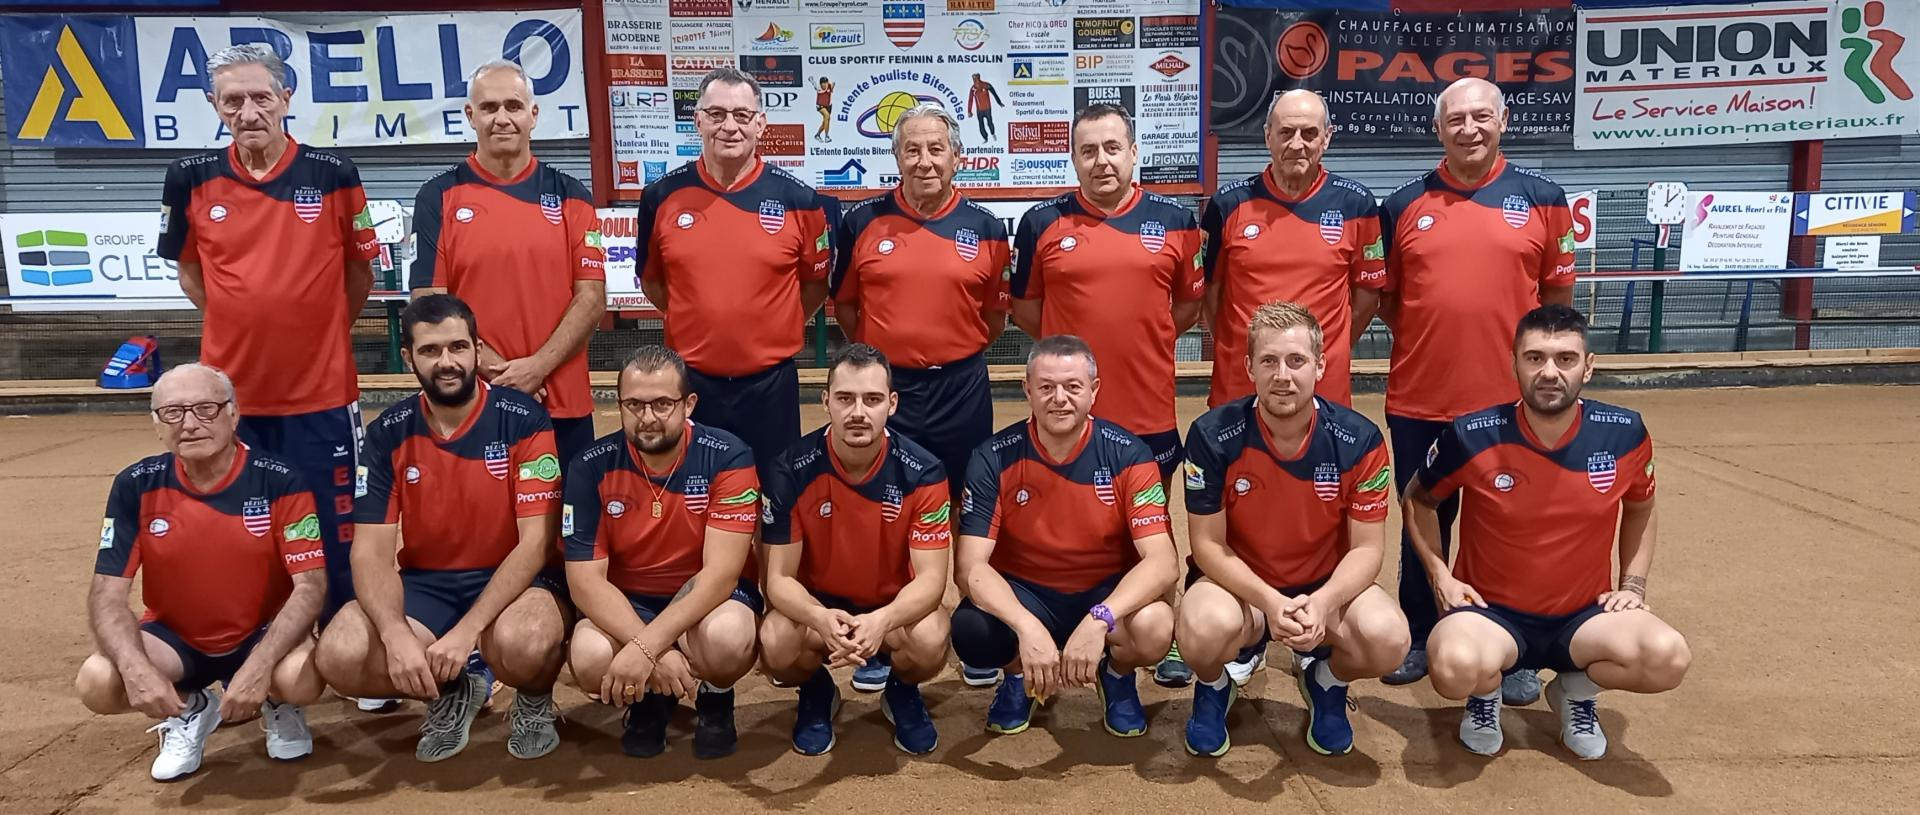 Beziers equipe nationale 1ere division